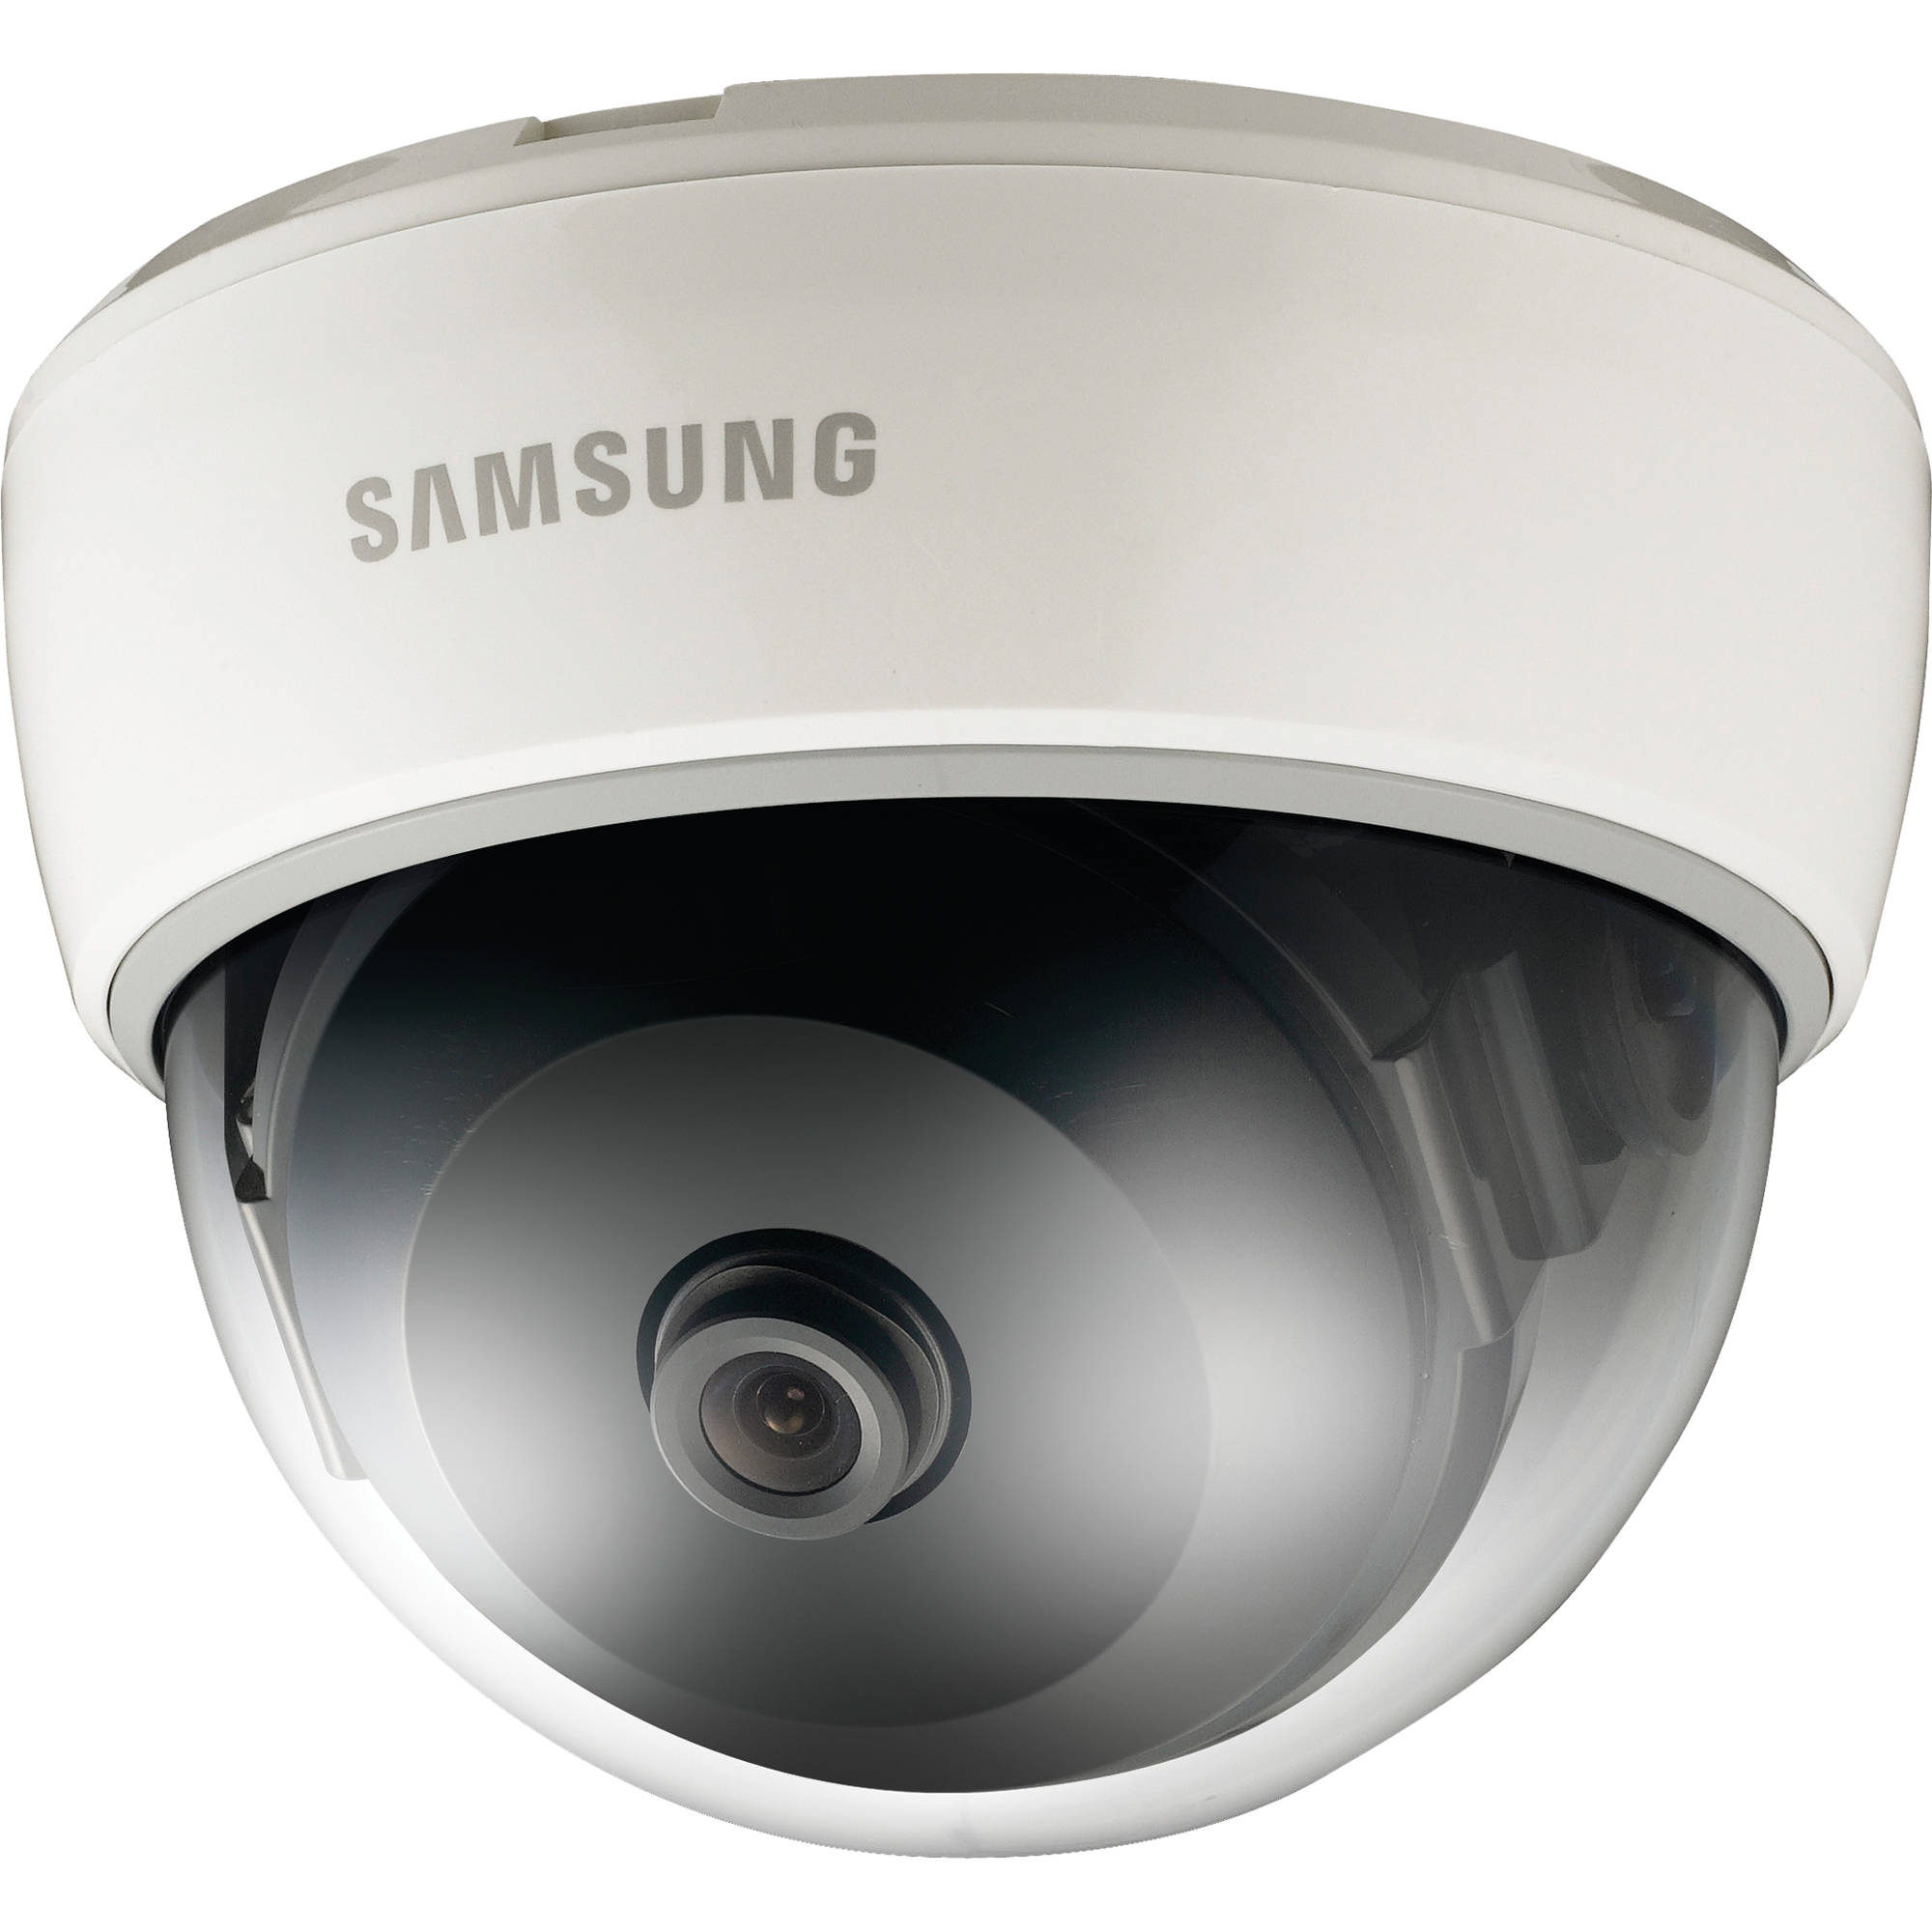 Samsung SND-1011 Network Camera Windows 8 X64